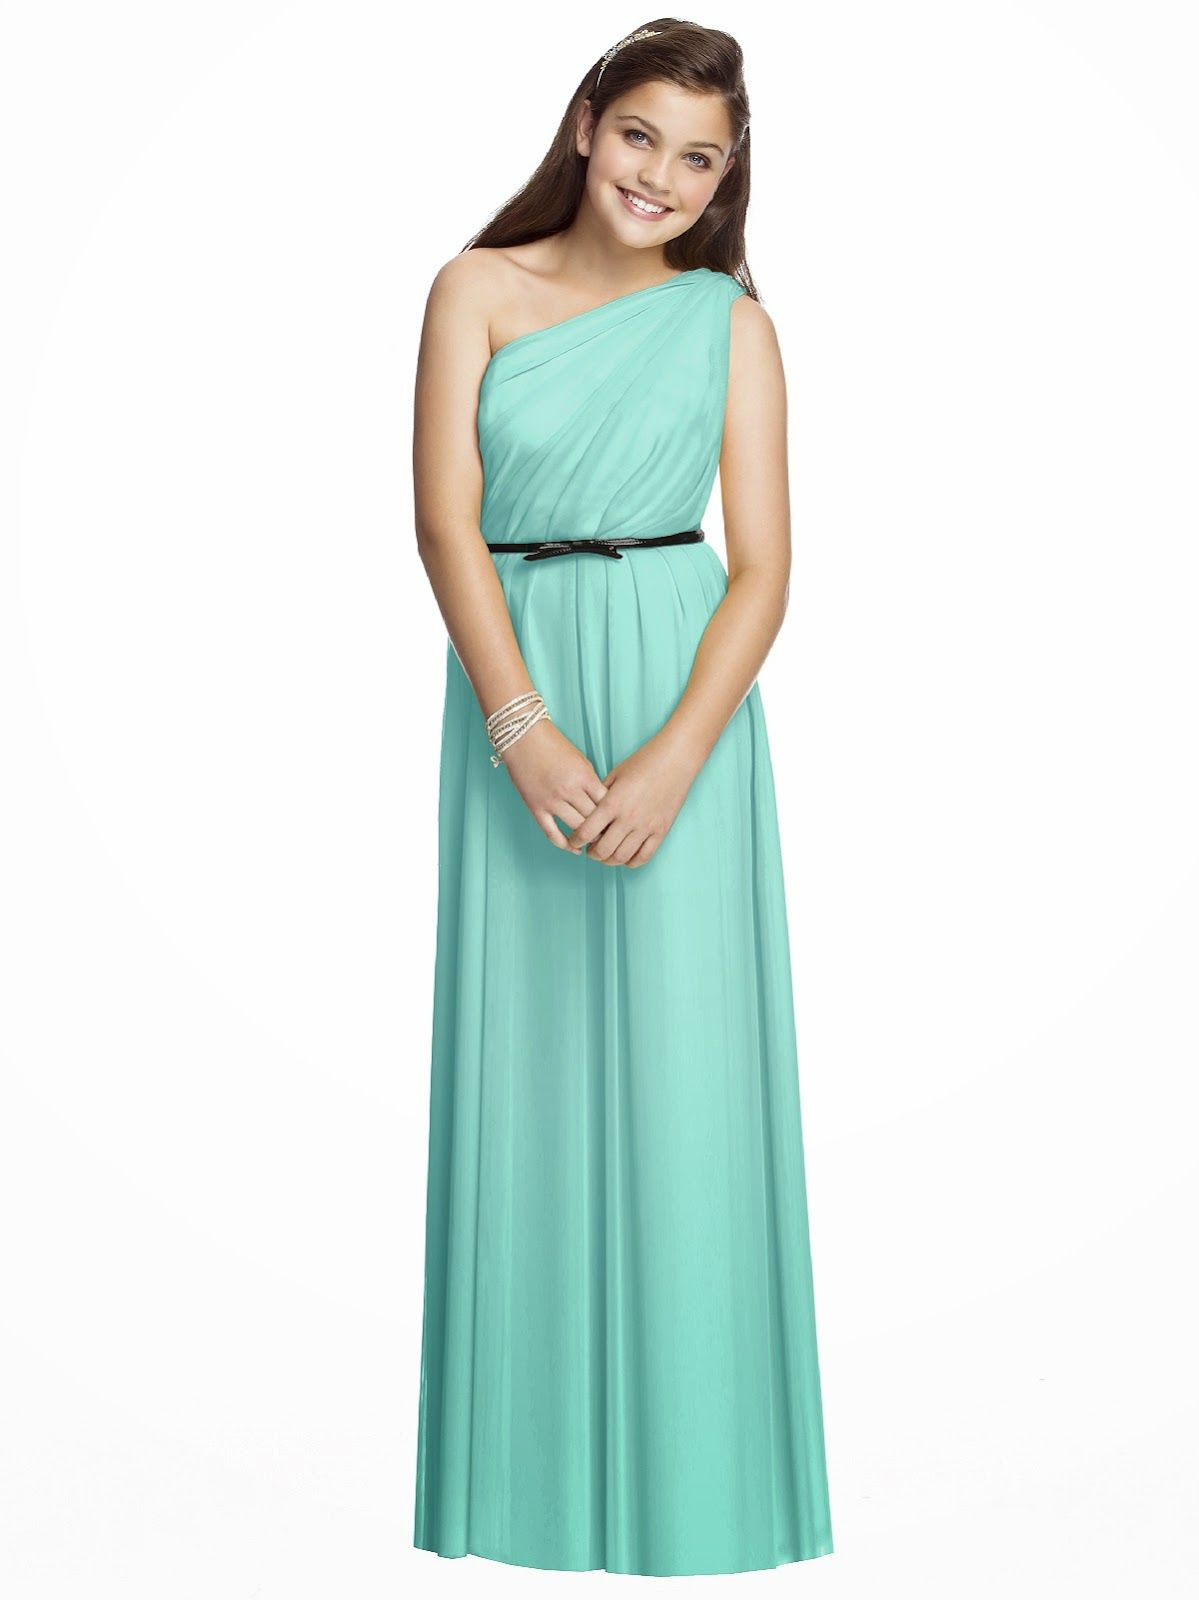 macy s bridesmaid dresses juniors macy wedding dresses Macy S Bridesmaid Dresses Juniors 44